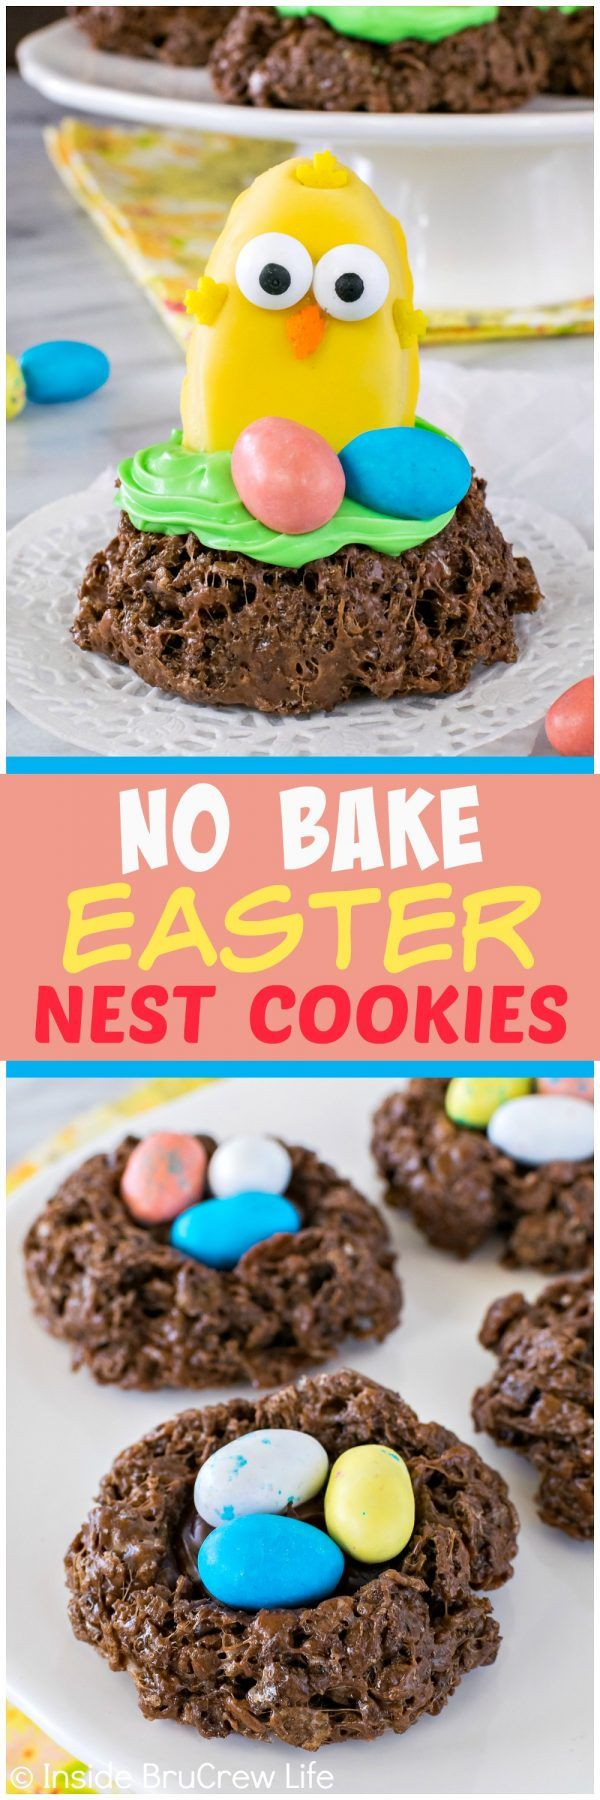 No Bake Easter Nest Cookies - adding fun colored candies and chicks to this easy cookie makes this the perfect recipe for spring parties!